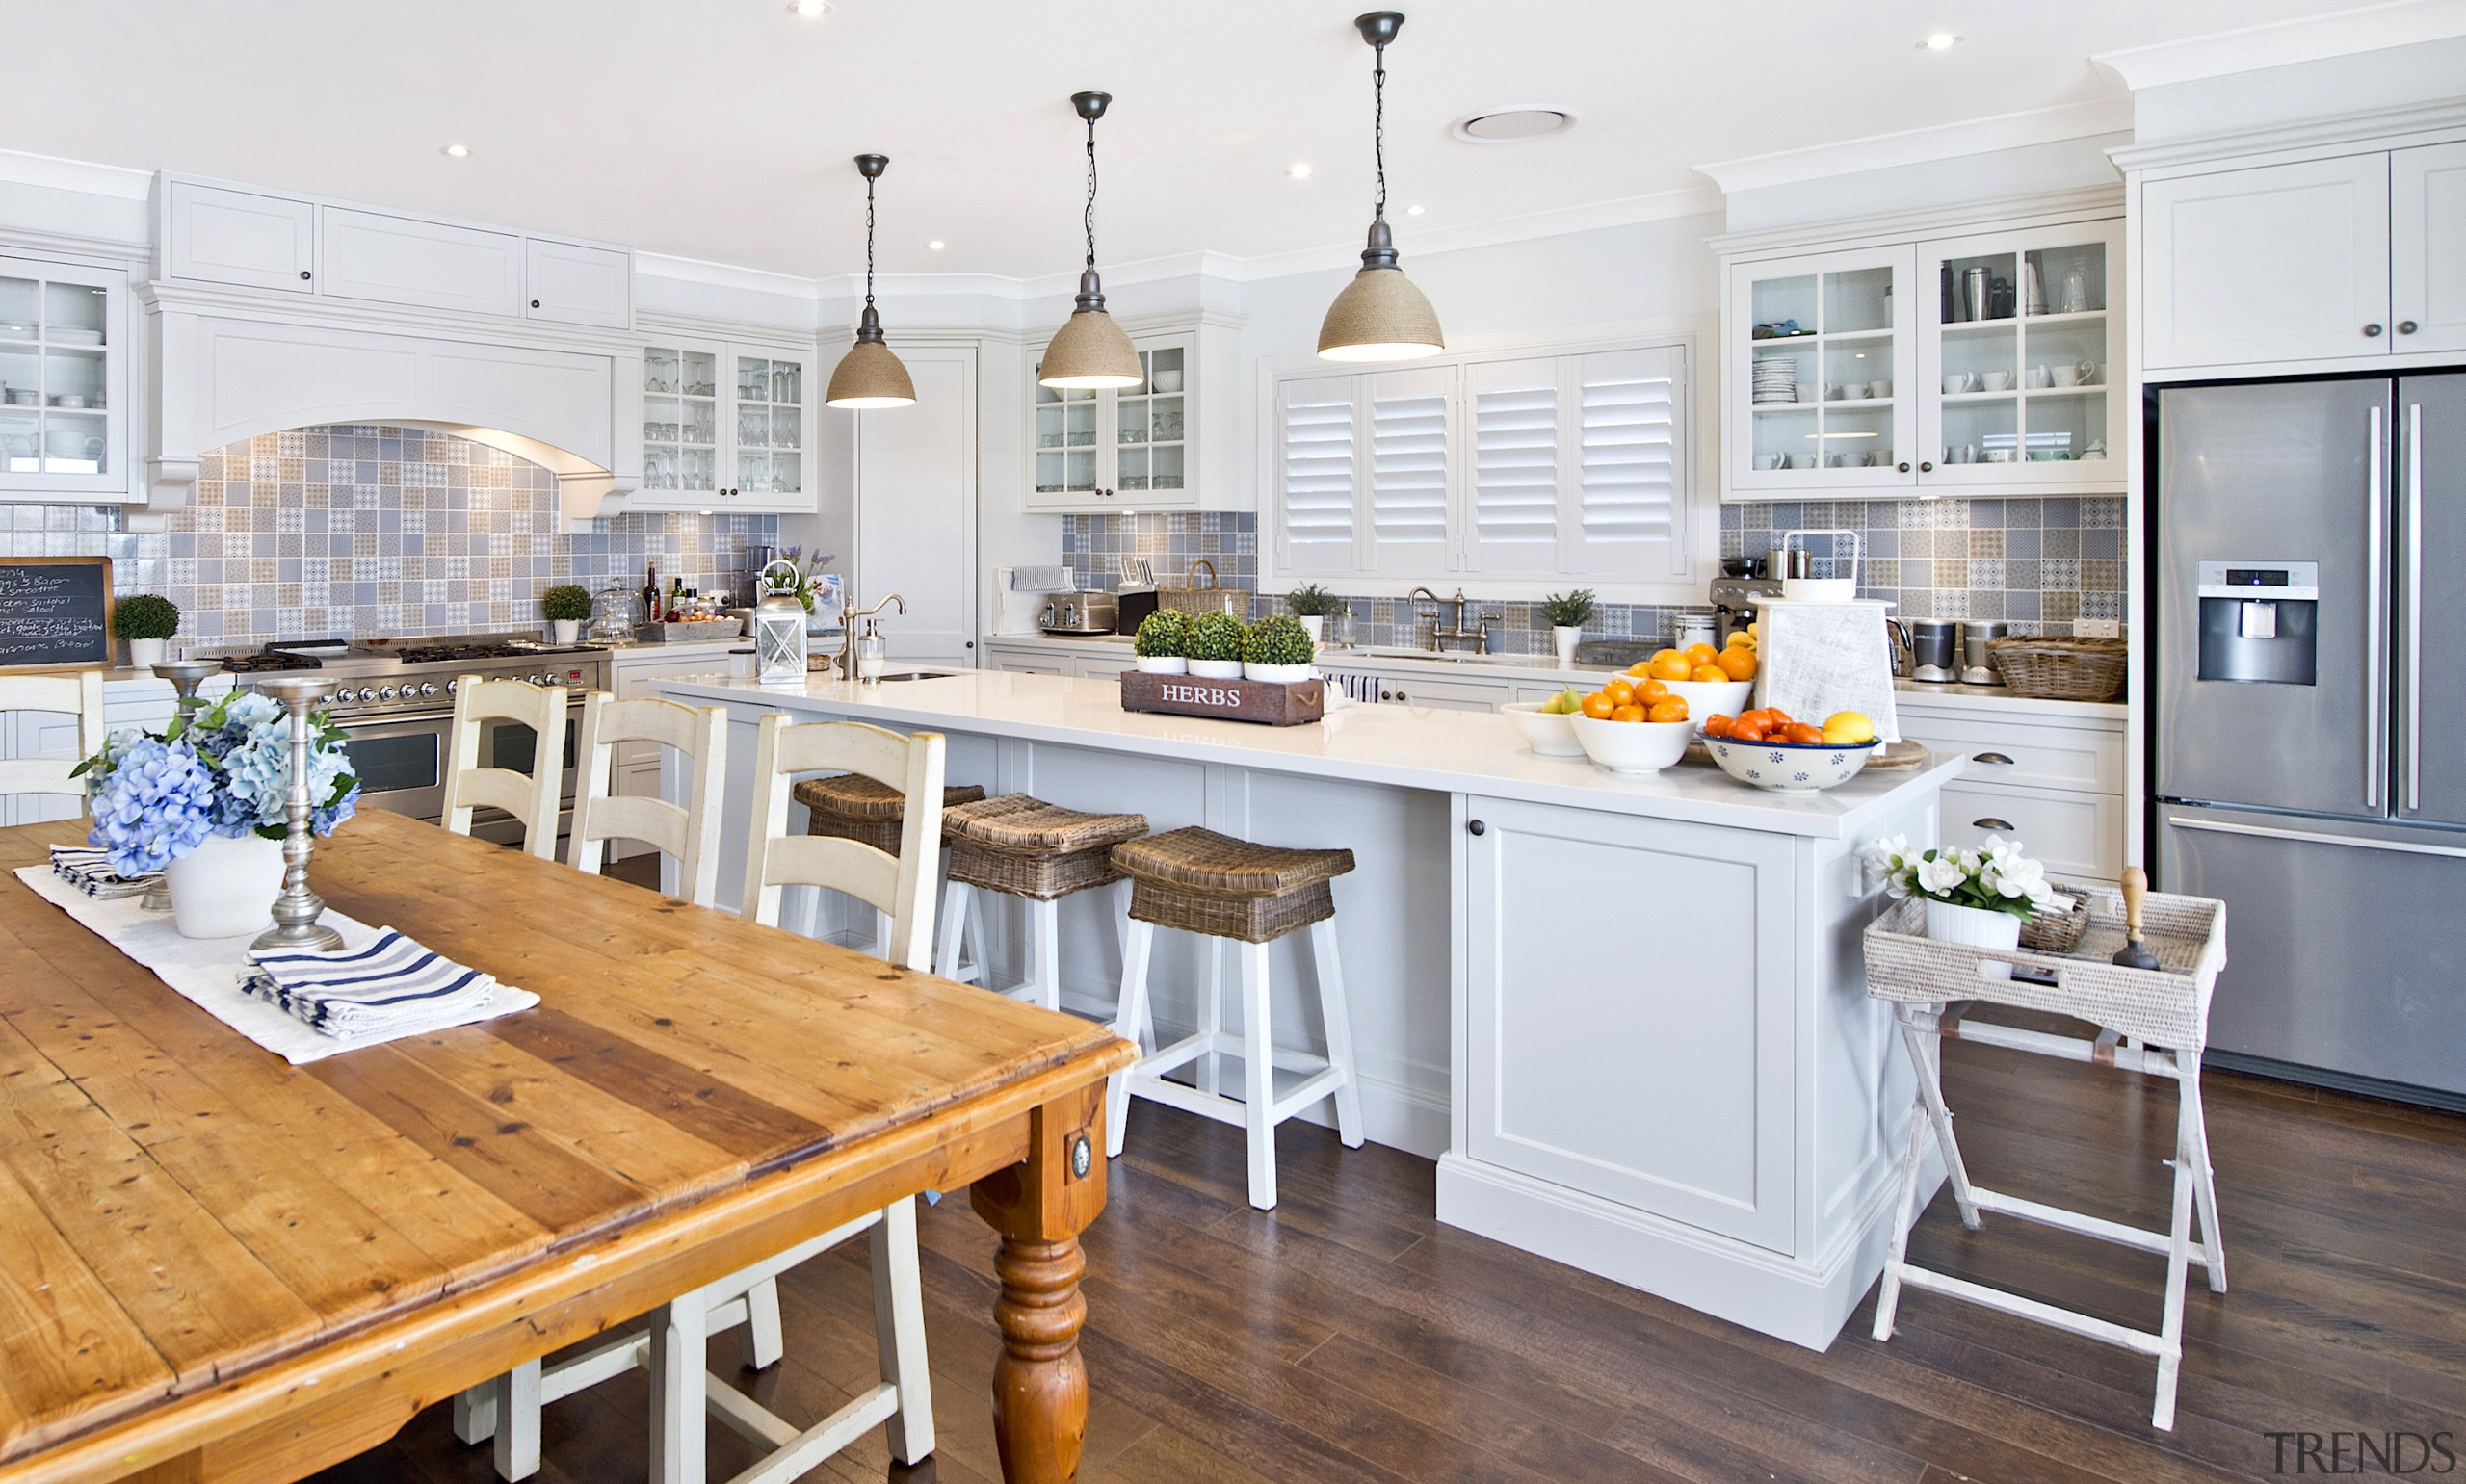 A traditional kitchen with glass-panelled upper cabinetry sits building, cabinetry, ceiling, countertop, cuisine classique, design, dining room, floor, flooring, furniture, hardwood, home, house, interior design, kitchen, laminate flooring, lighting, property, real estate, room, table, tile, white, wood, wood flooring, yellow, white